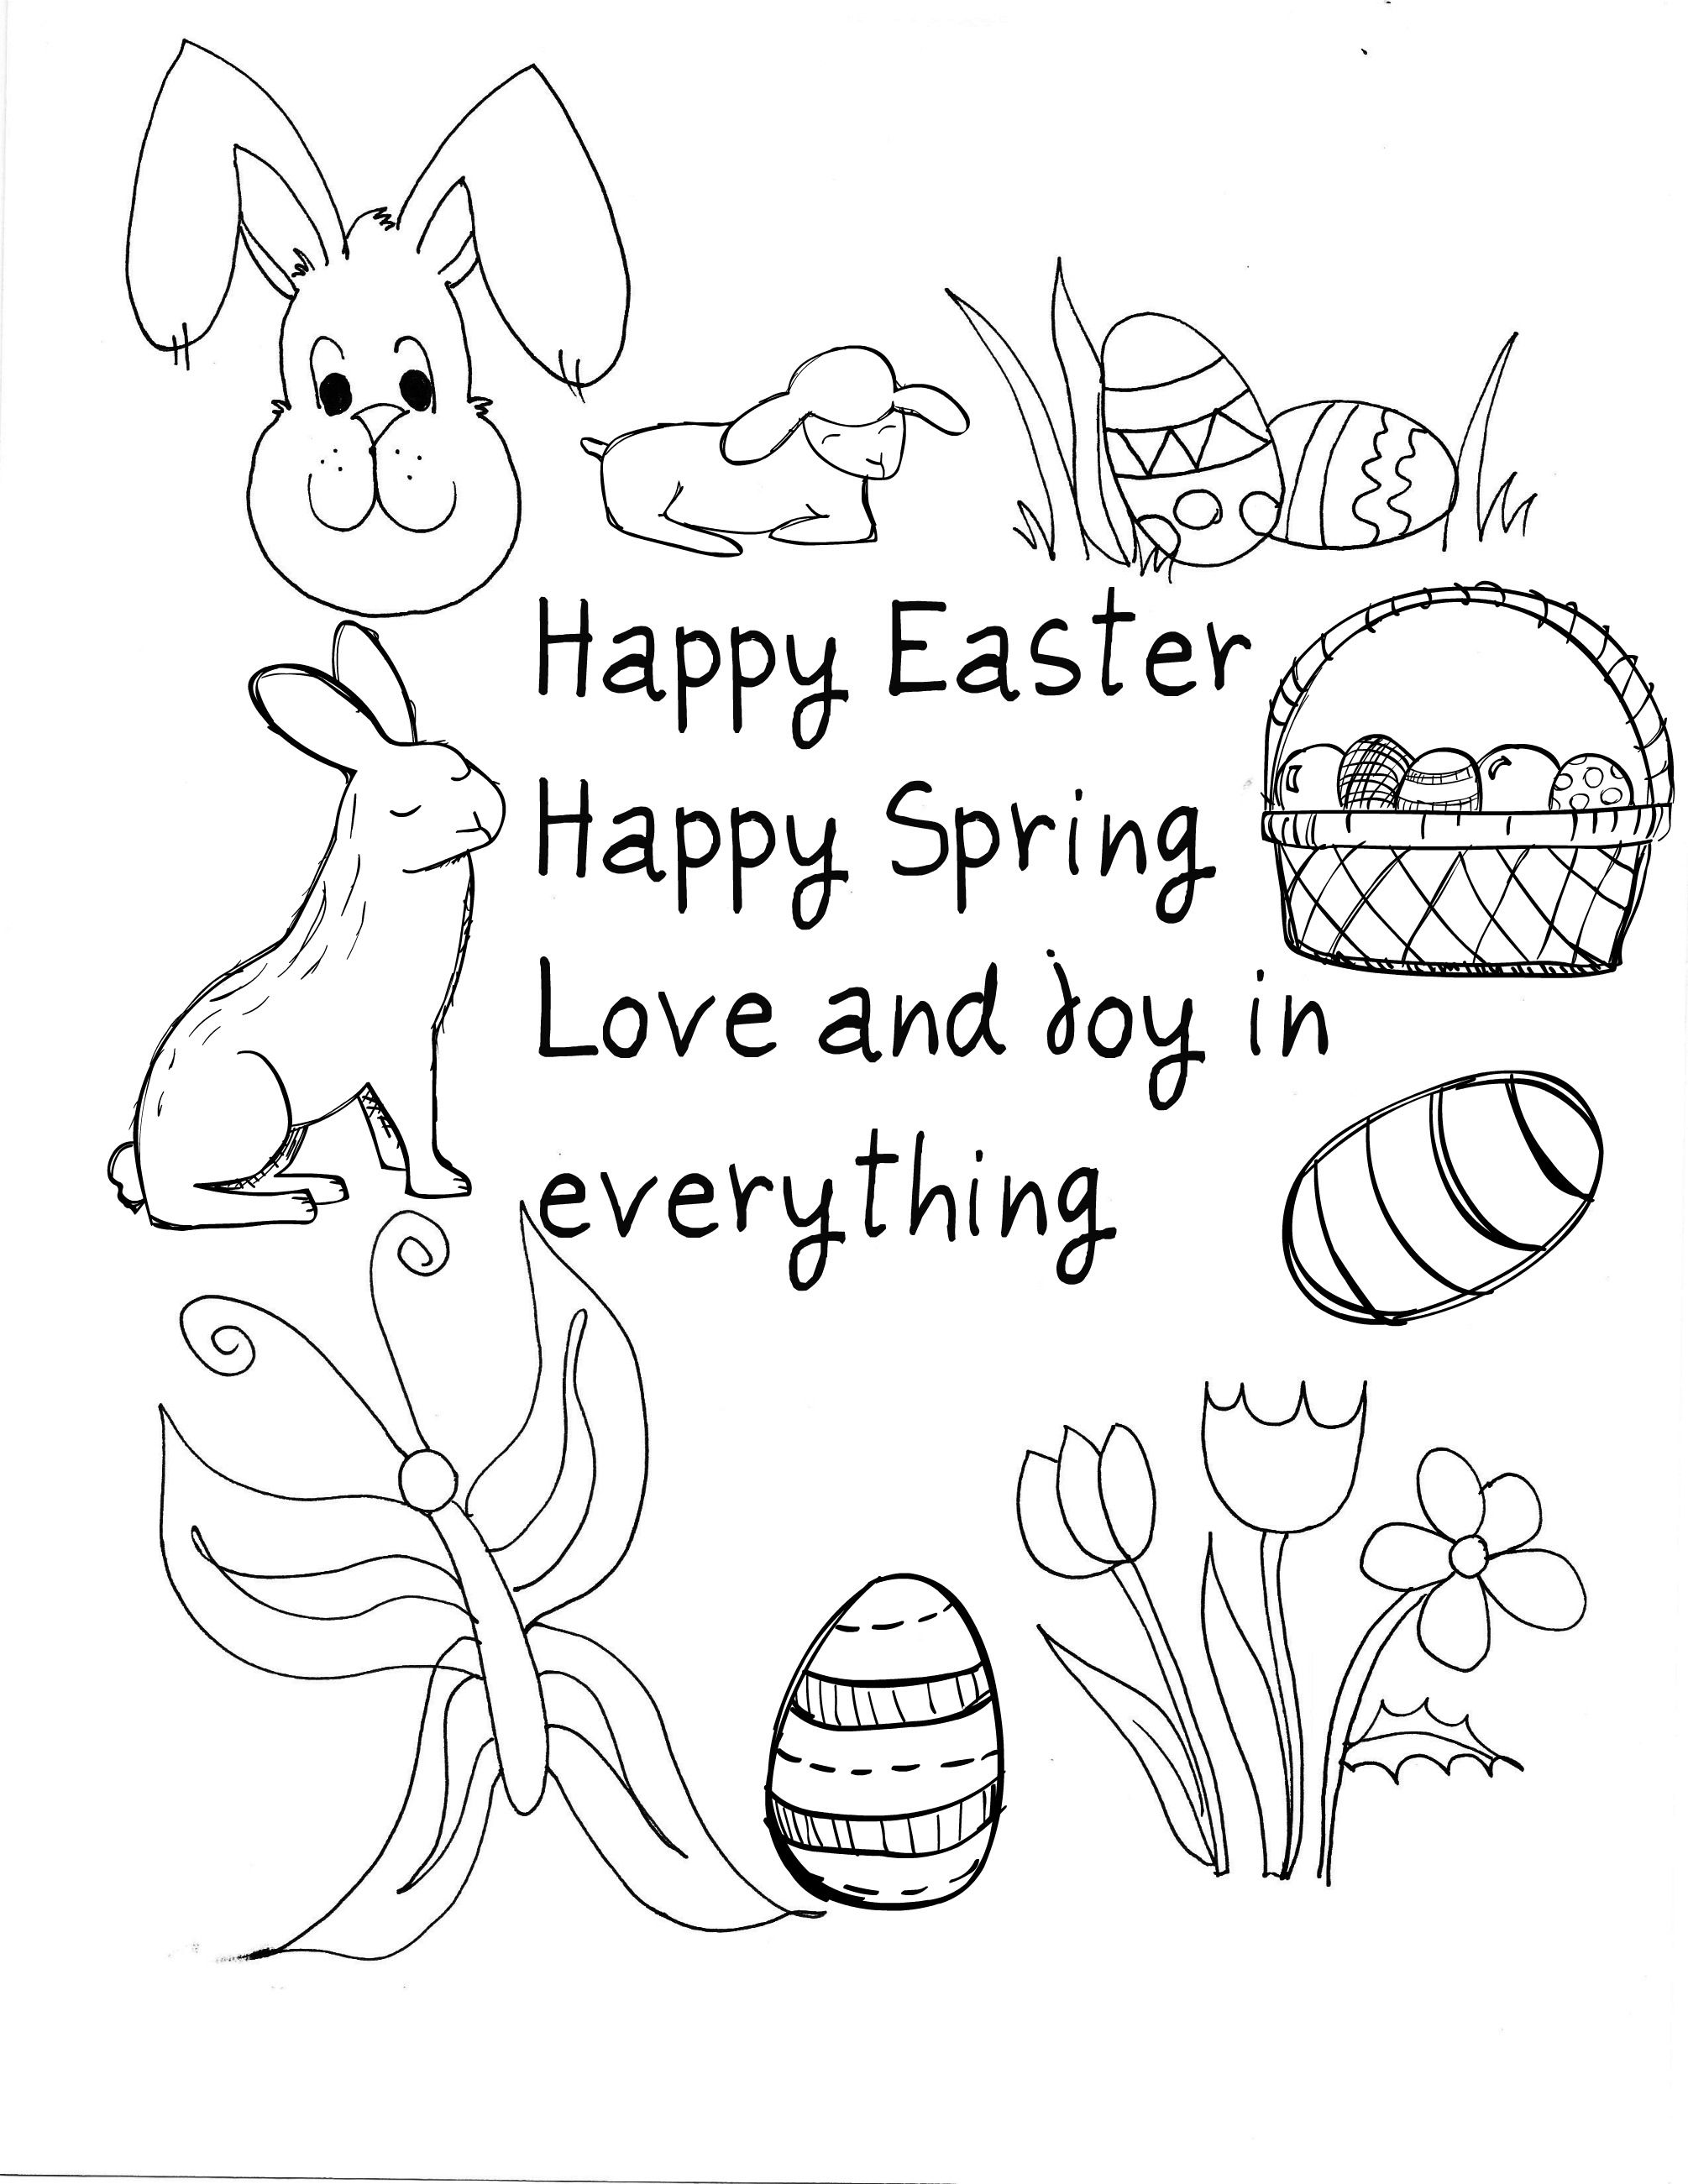 Free coloring pages spring - Free Easter And Spring Coloring Pages Archives Ketaros Com